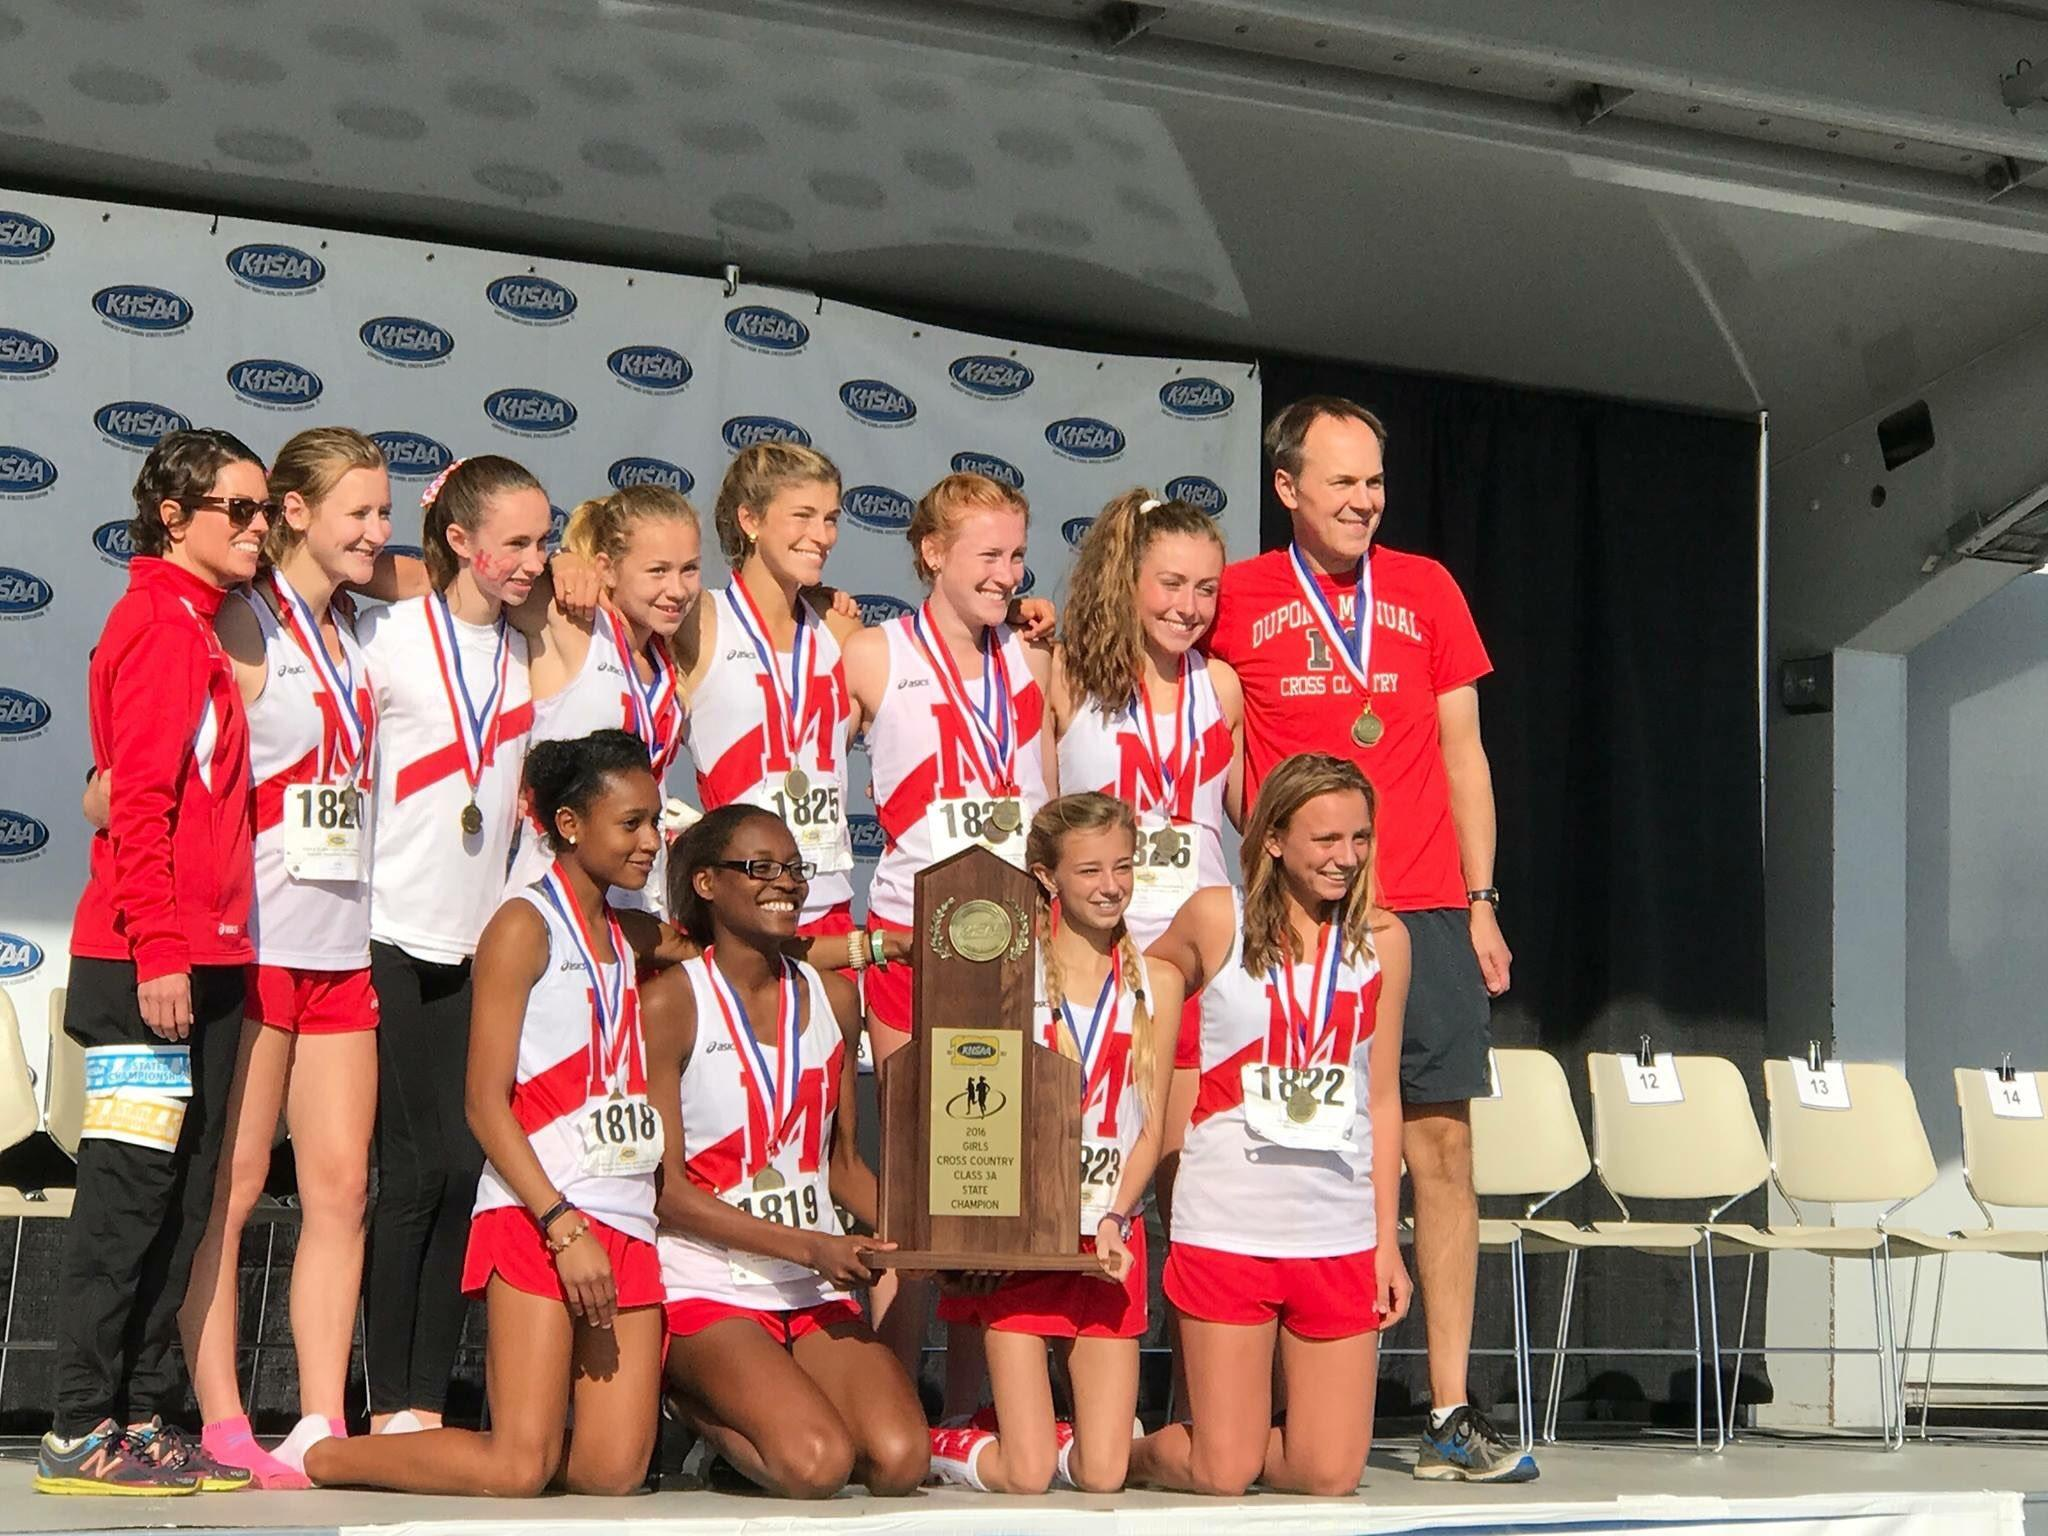 The girls' cross country team poses with the first place trophy at the state competition. Photo courtesy of Alena Sapienza-Wright.